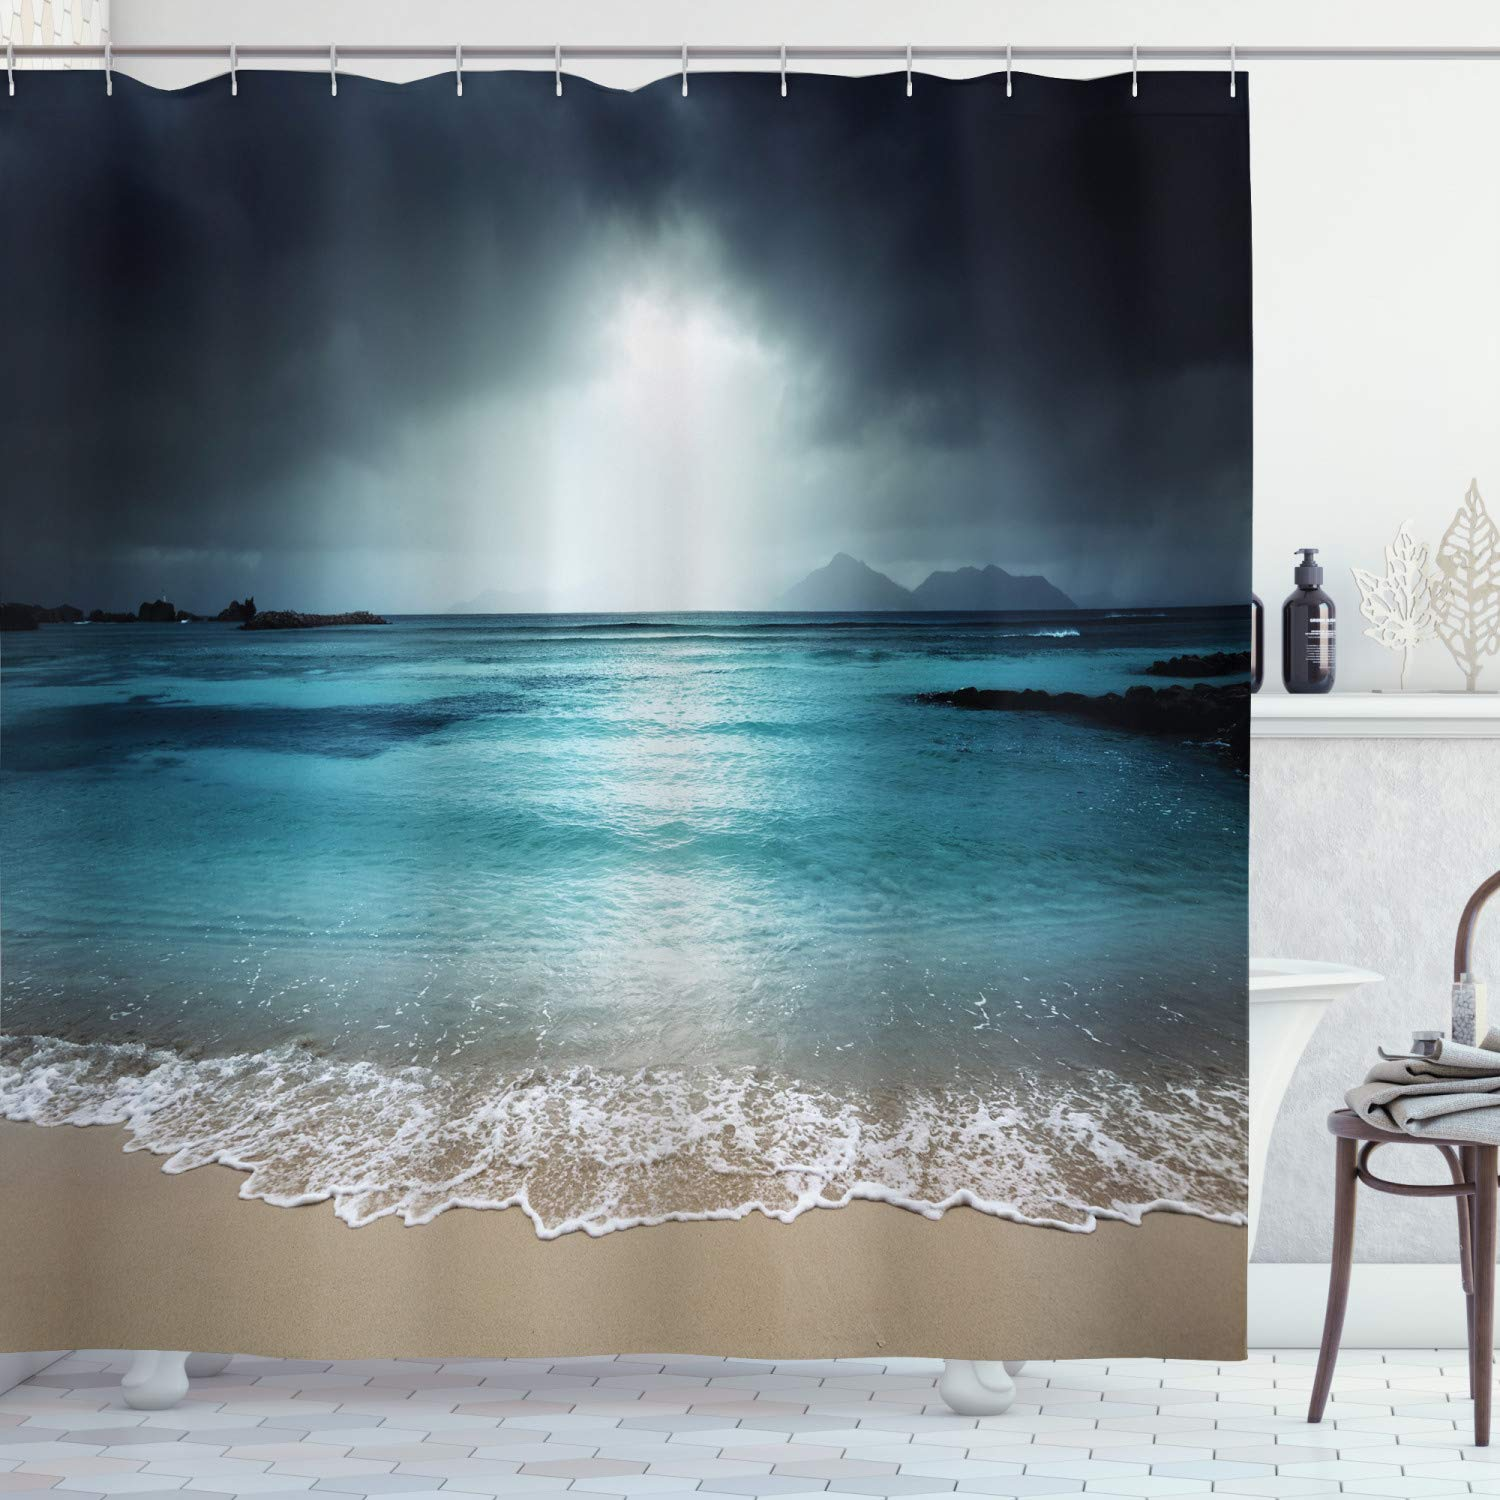 Us 6 49 35 Off Tropical Shower Curtain Storm Sky On The Beach Of La Dugue Island Seychelles Dramatic Scene Fabric Bathroom Decor Set With Hooks In